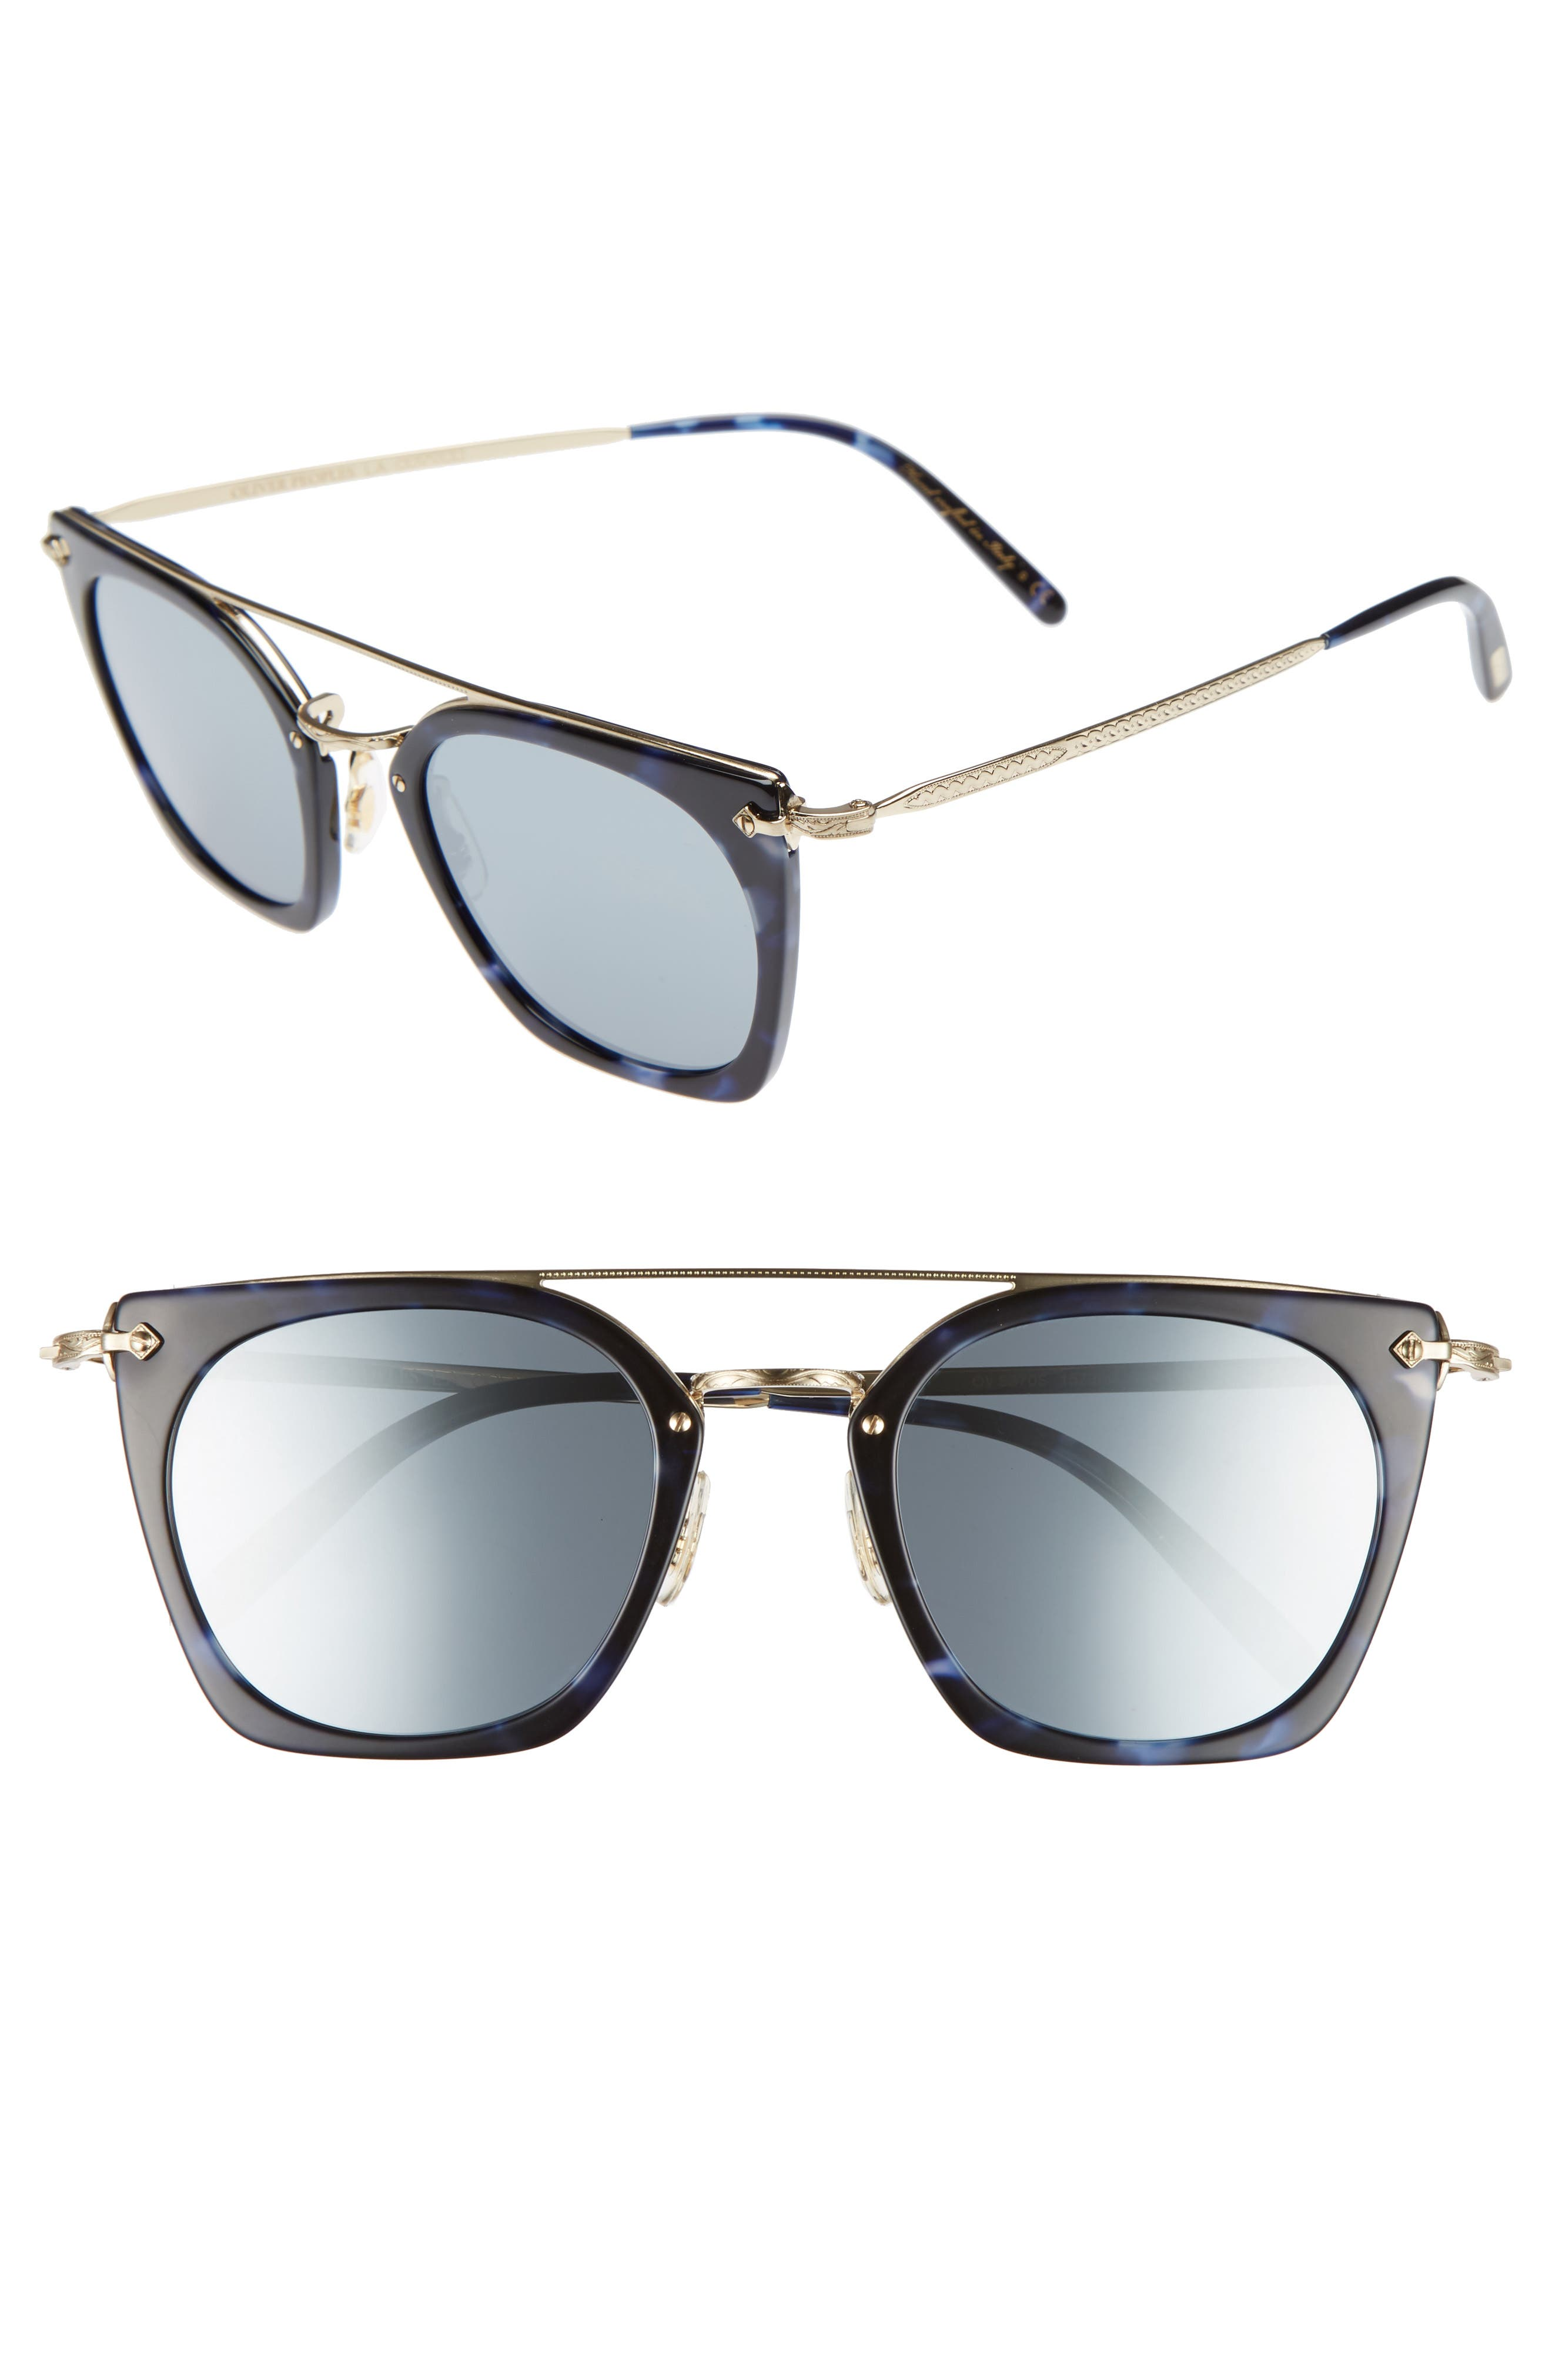 Oliver Peoples Dacette 50mm Square Aviator Sunglasses